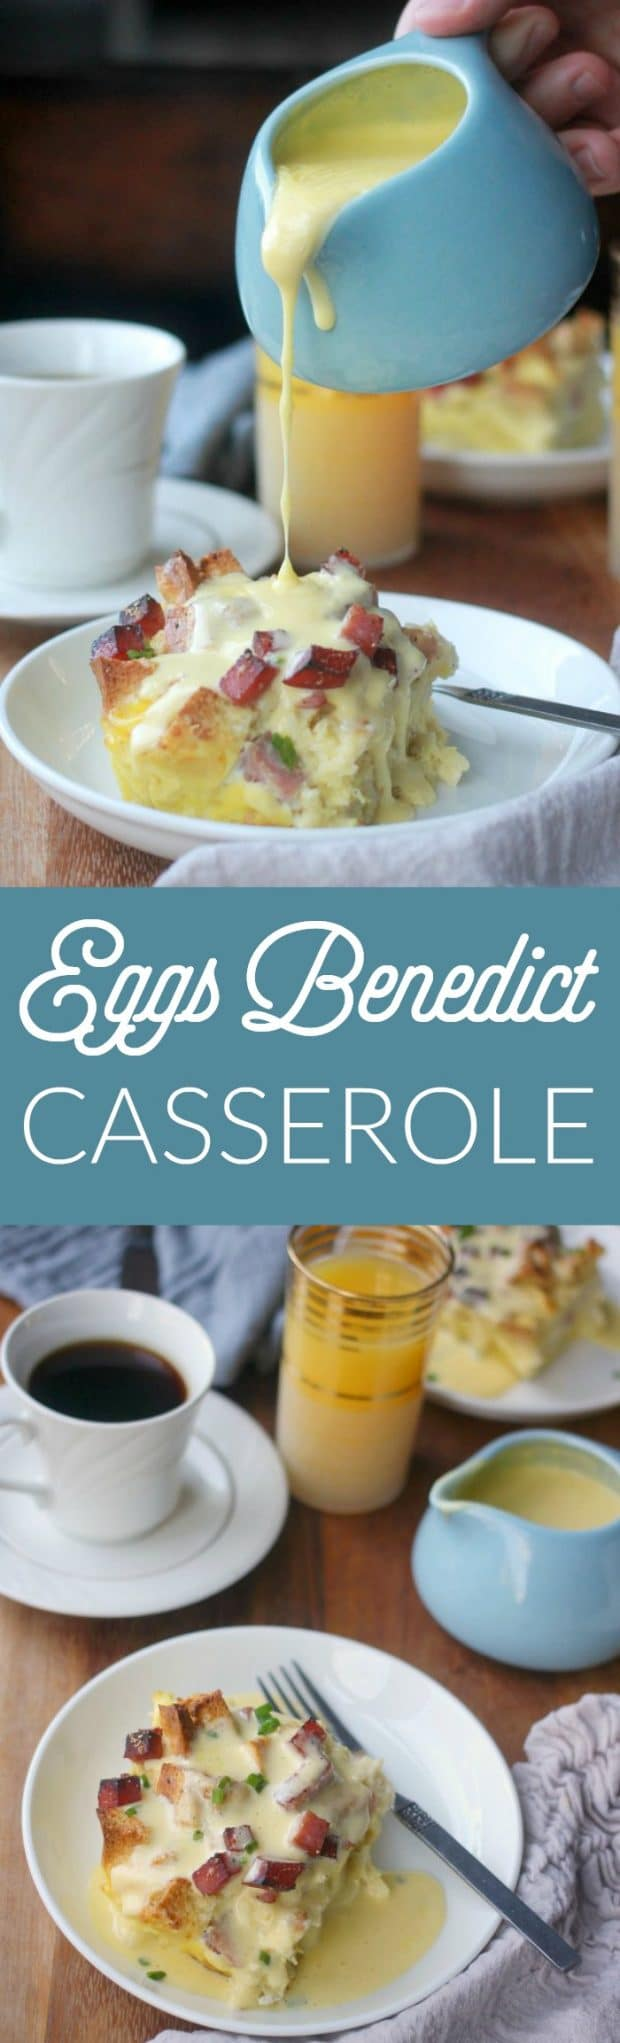 Overnight eggs benedict casserole is my solution to wanting to serve eggs benedict at brunch but not wanting to be standing over the stove poaching eggs. No poaching required here! Just a silky baked custard over cubed english muffins with canadian bacon and a rich hollandaise sauce to finish!